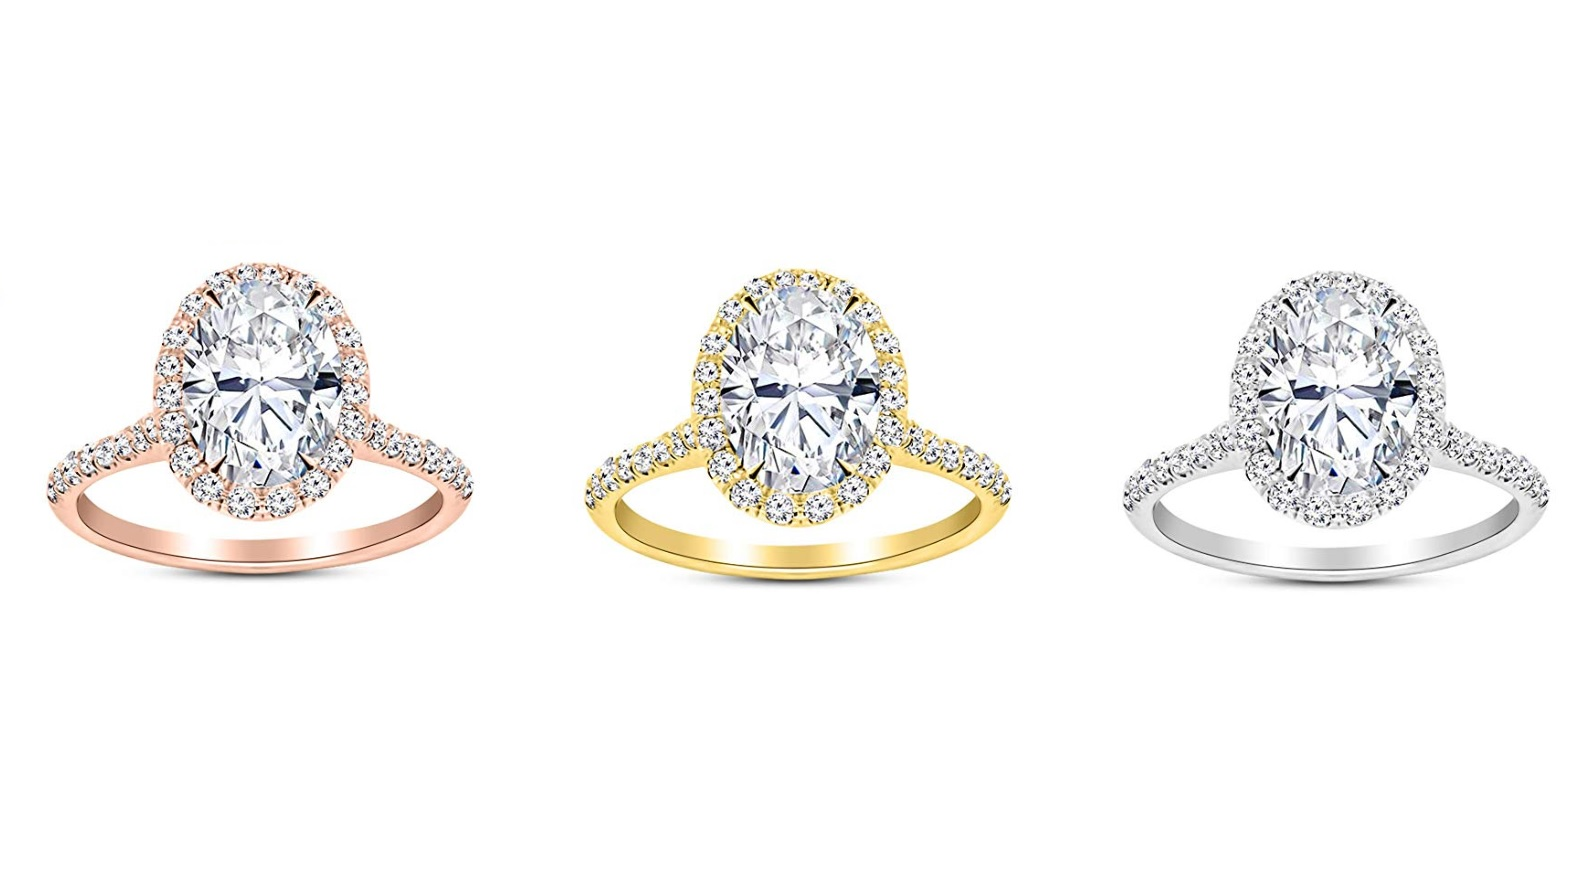 One of The Top Engagement Rings for Women to Buy in 2020